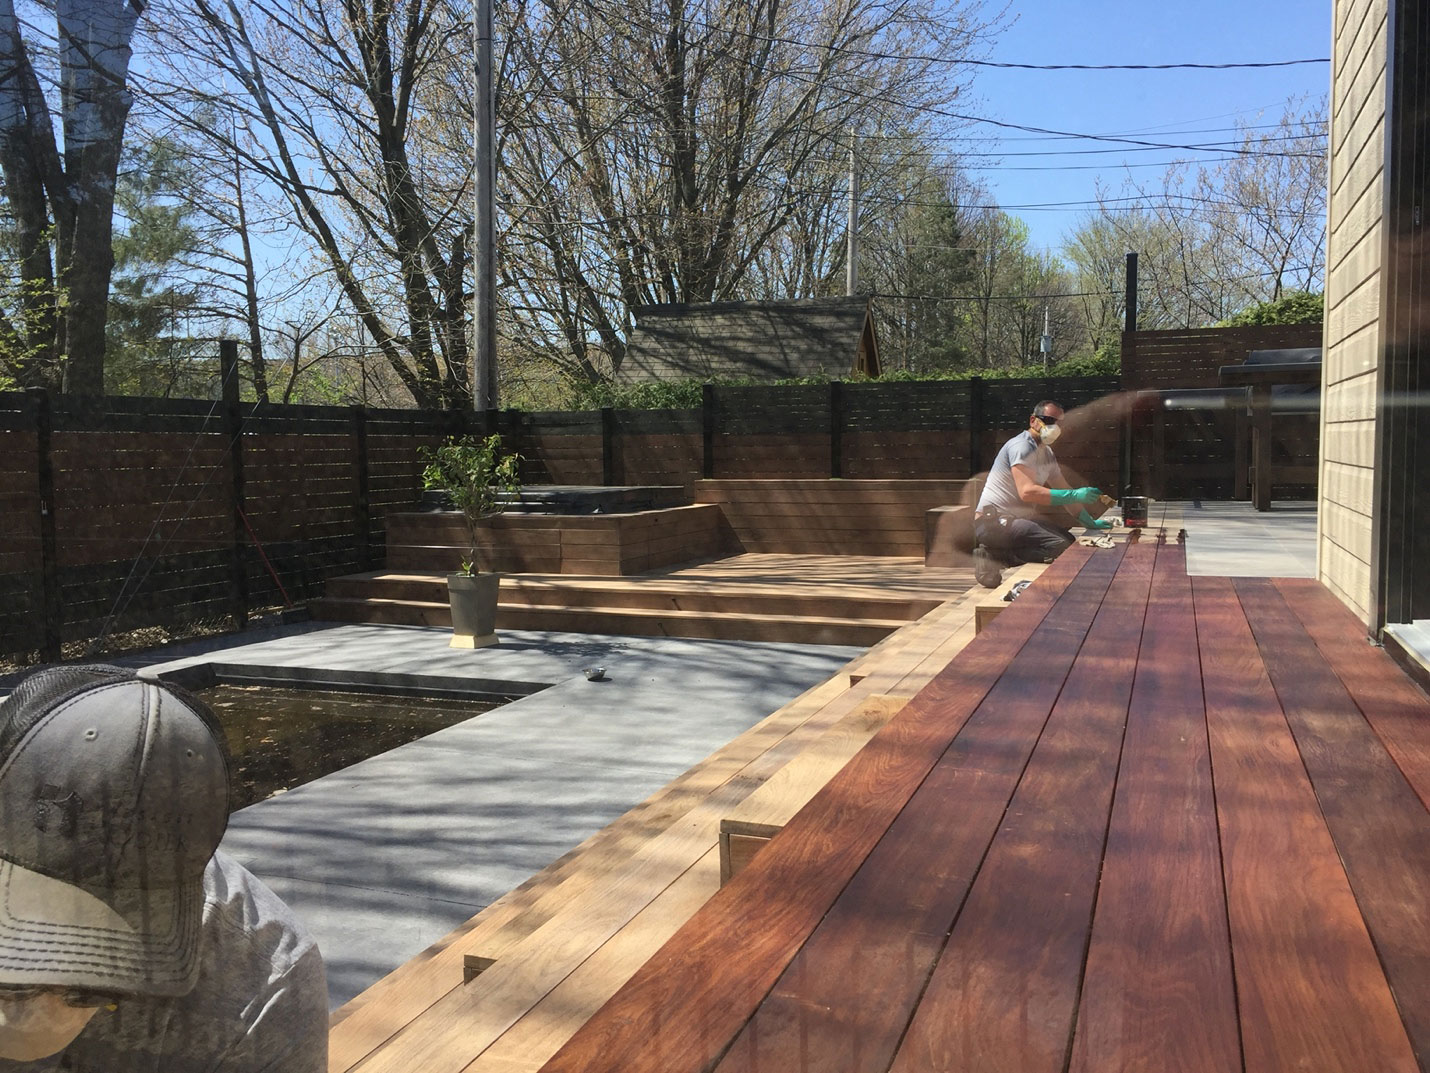 Step 6 for the spa deck: treat Brazilian wood with oil